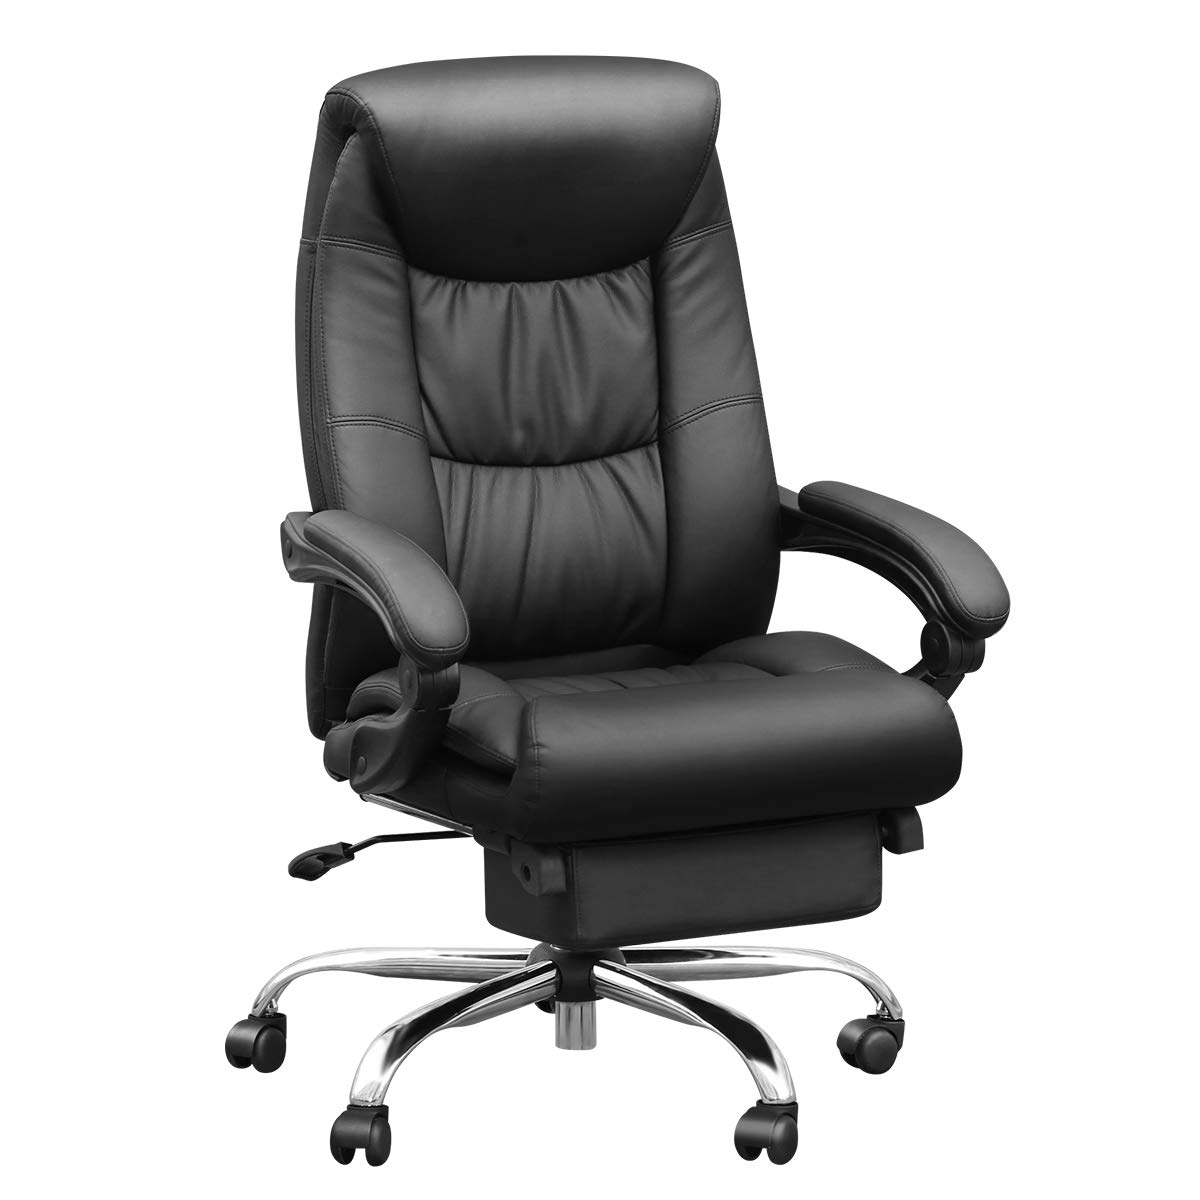 Duramont Reclining Office Chair with Lumbar Support - High Back Executive Chair - Thick Seat Cushion - Ergonomic Adjustable Seat Height and Back Recline - Desk and Task Chair by Duramont